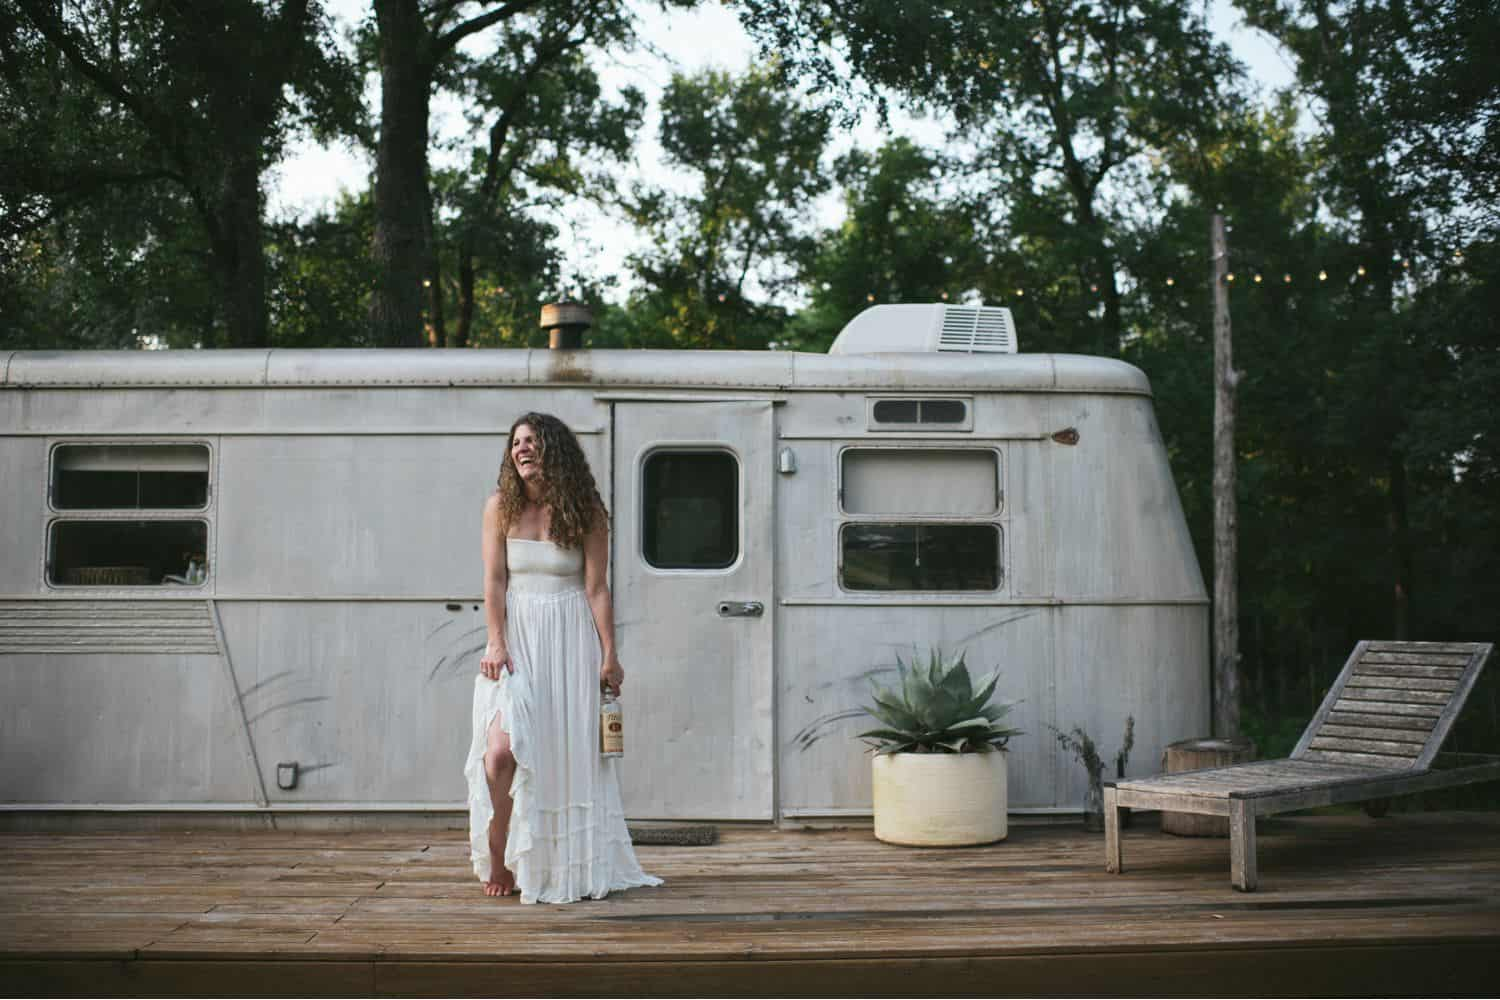 woman in white dress standing in front of a camper